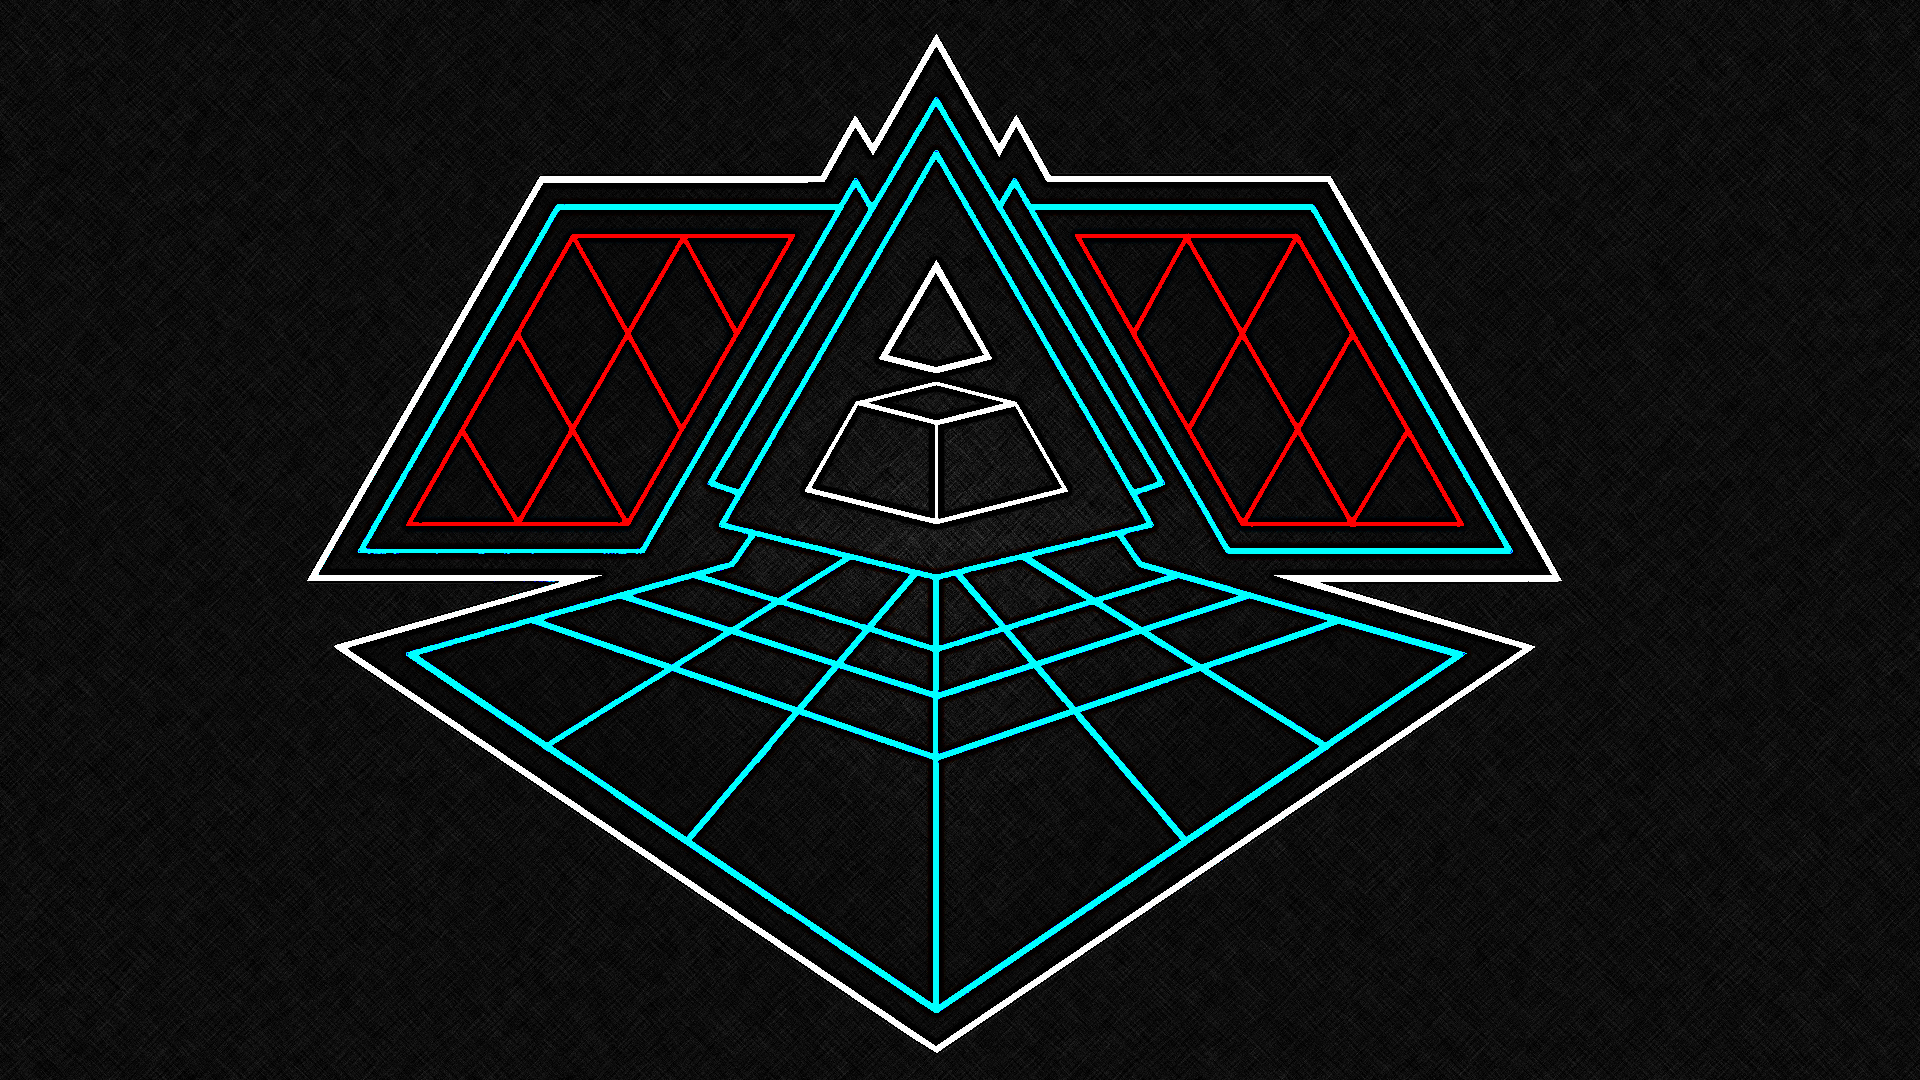 Daft Punk Alive Tour Wallpaper by HFrezza on DeviantArt